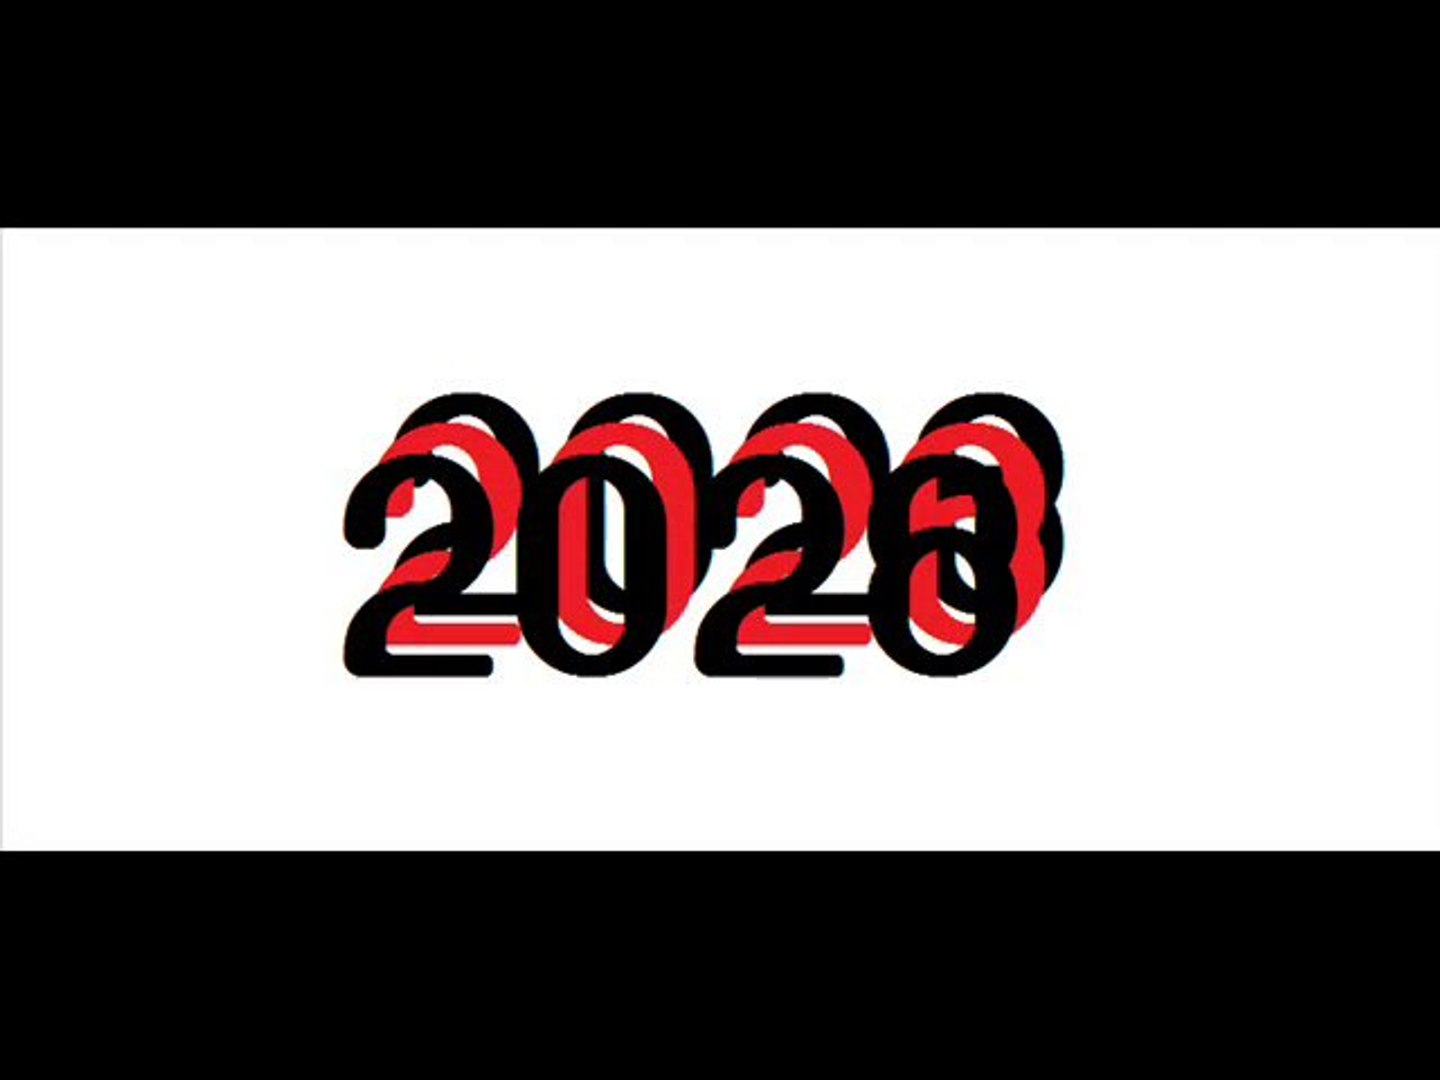 Welcome to the 2020s (Future Timeline Events 2020-2029)